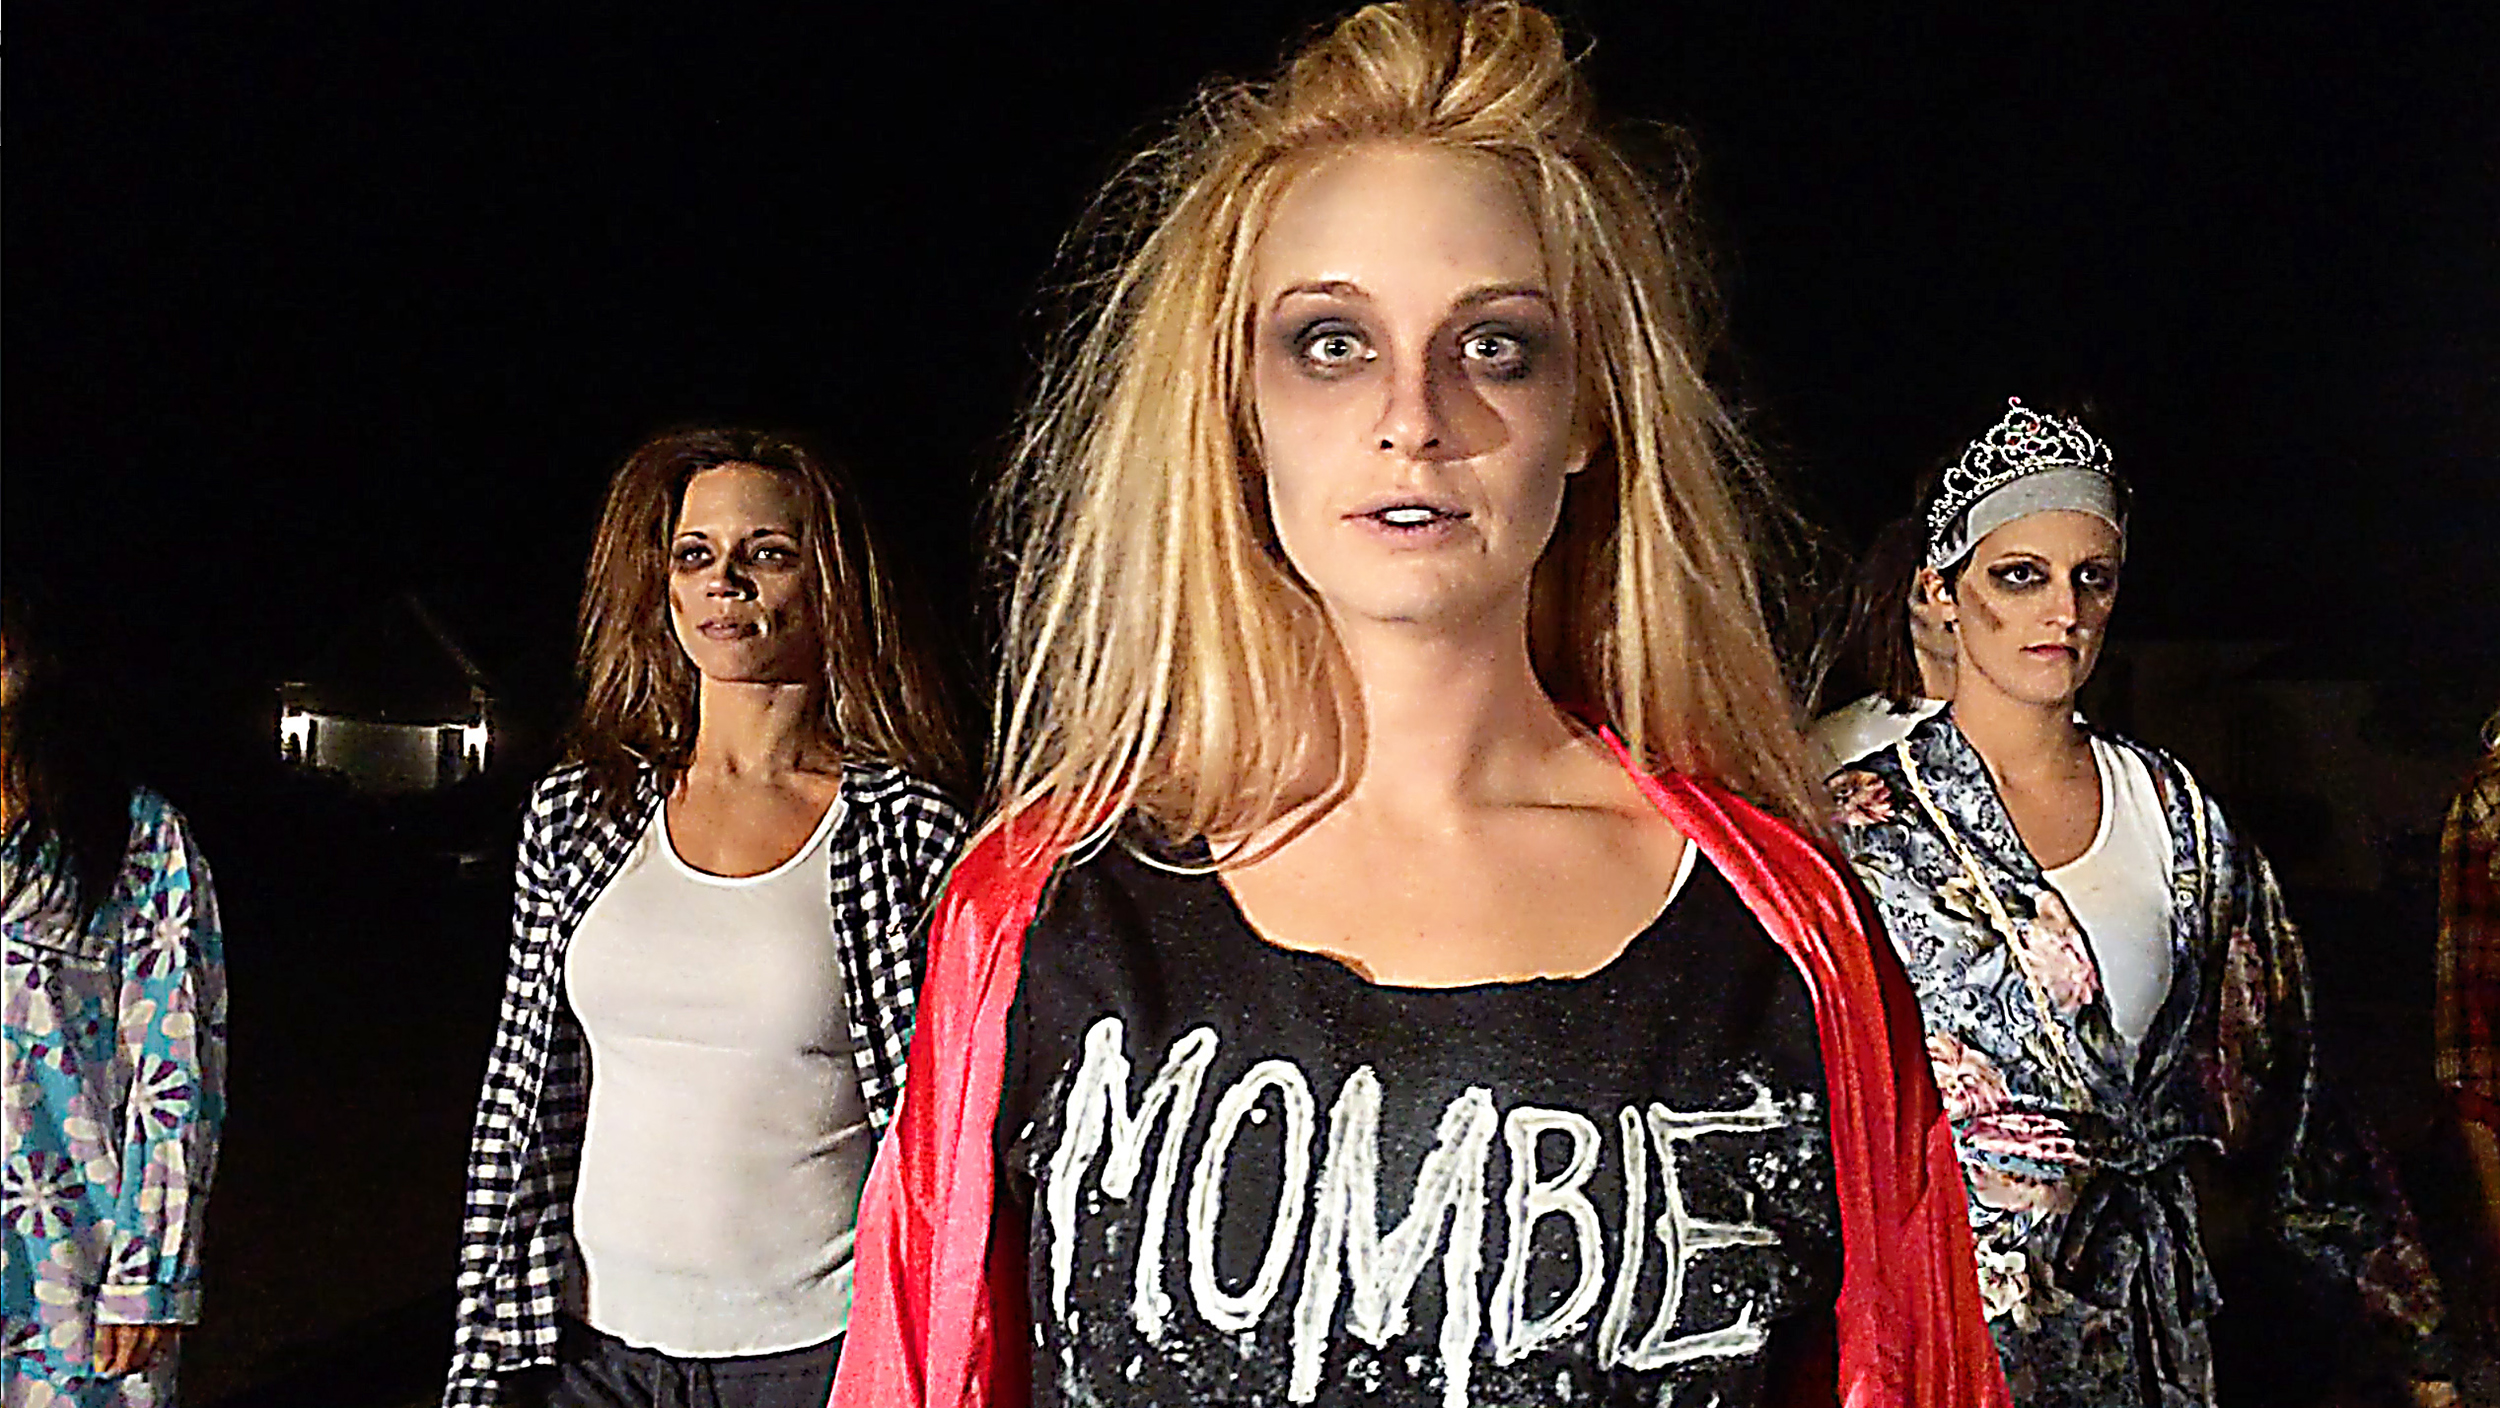 Thriller Gets A Hilarious Zombie Mom Parody Update